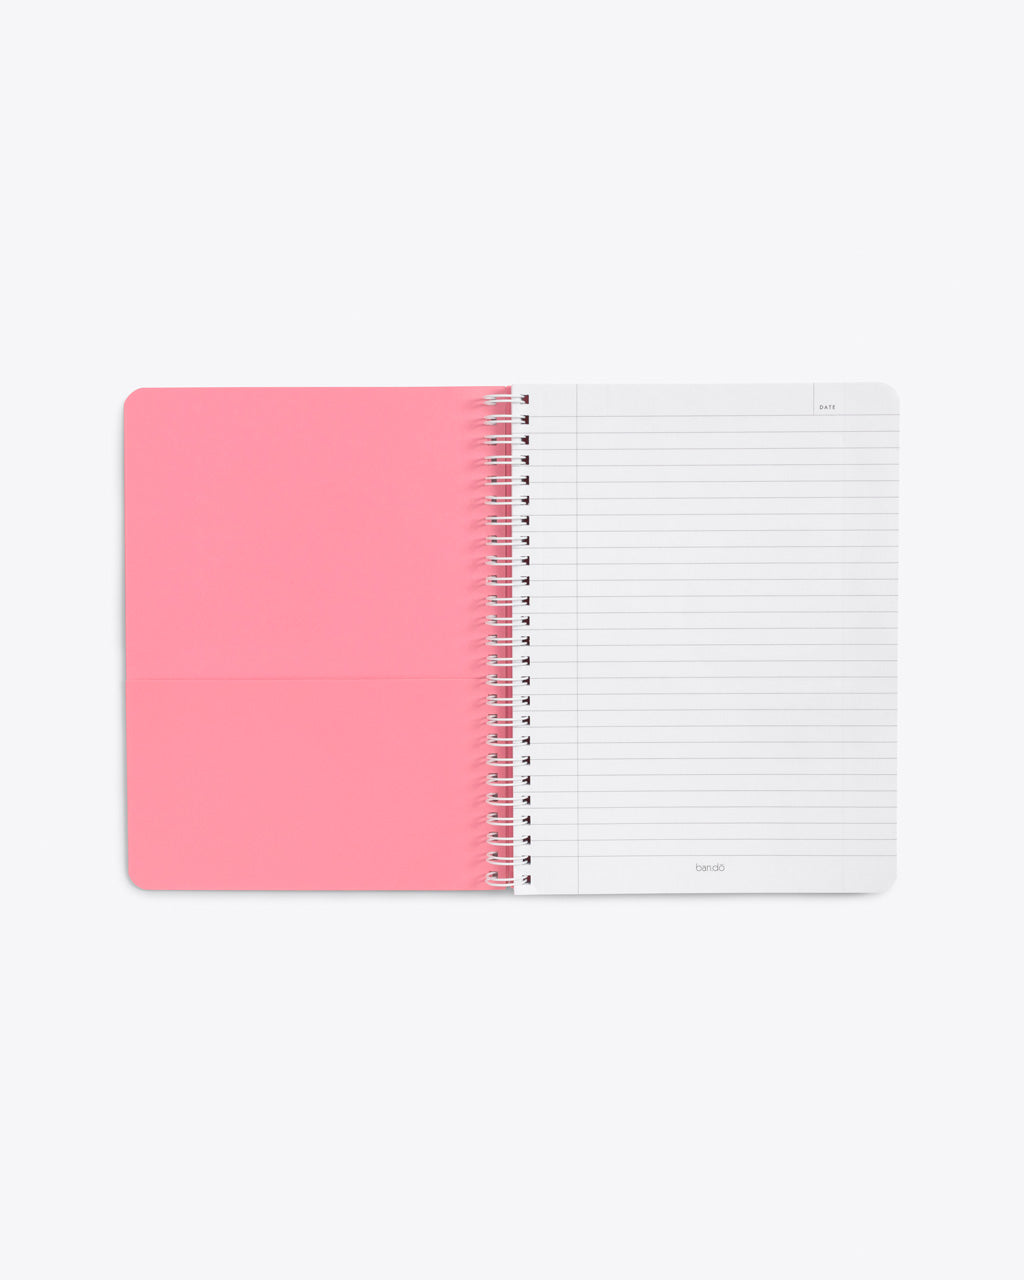 interior image of pink pocket sheet and lined page